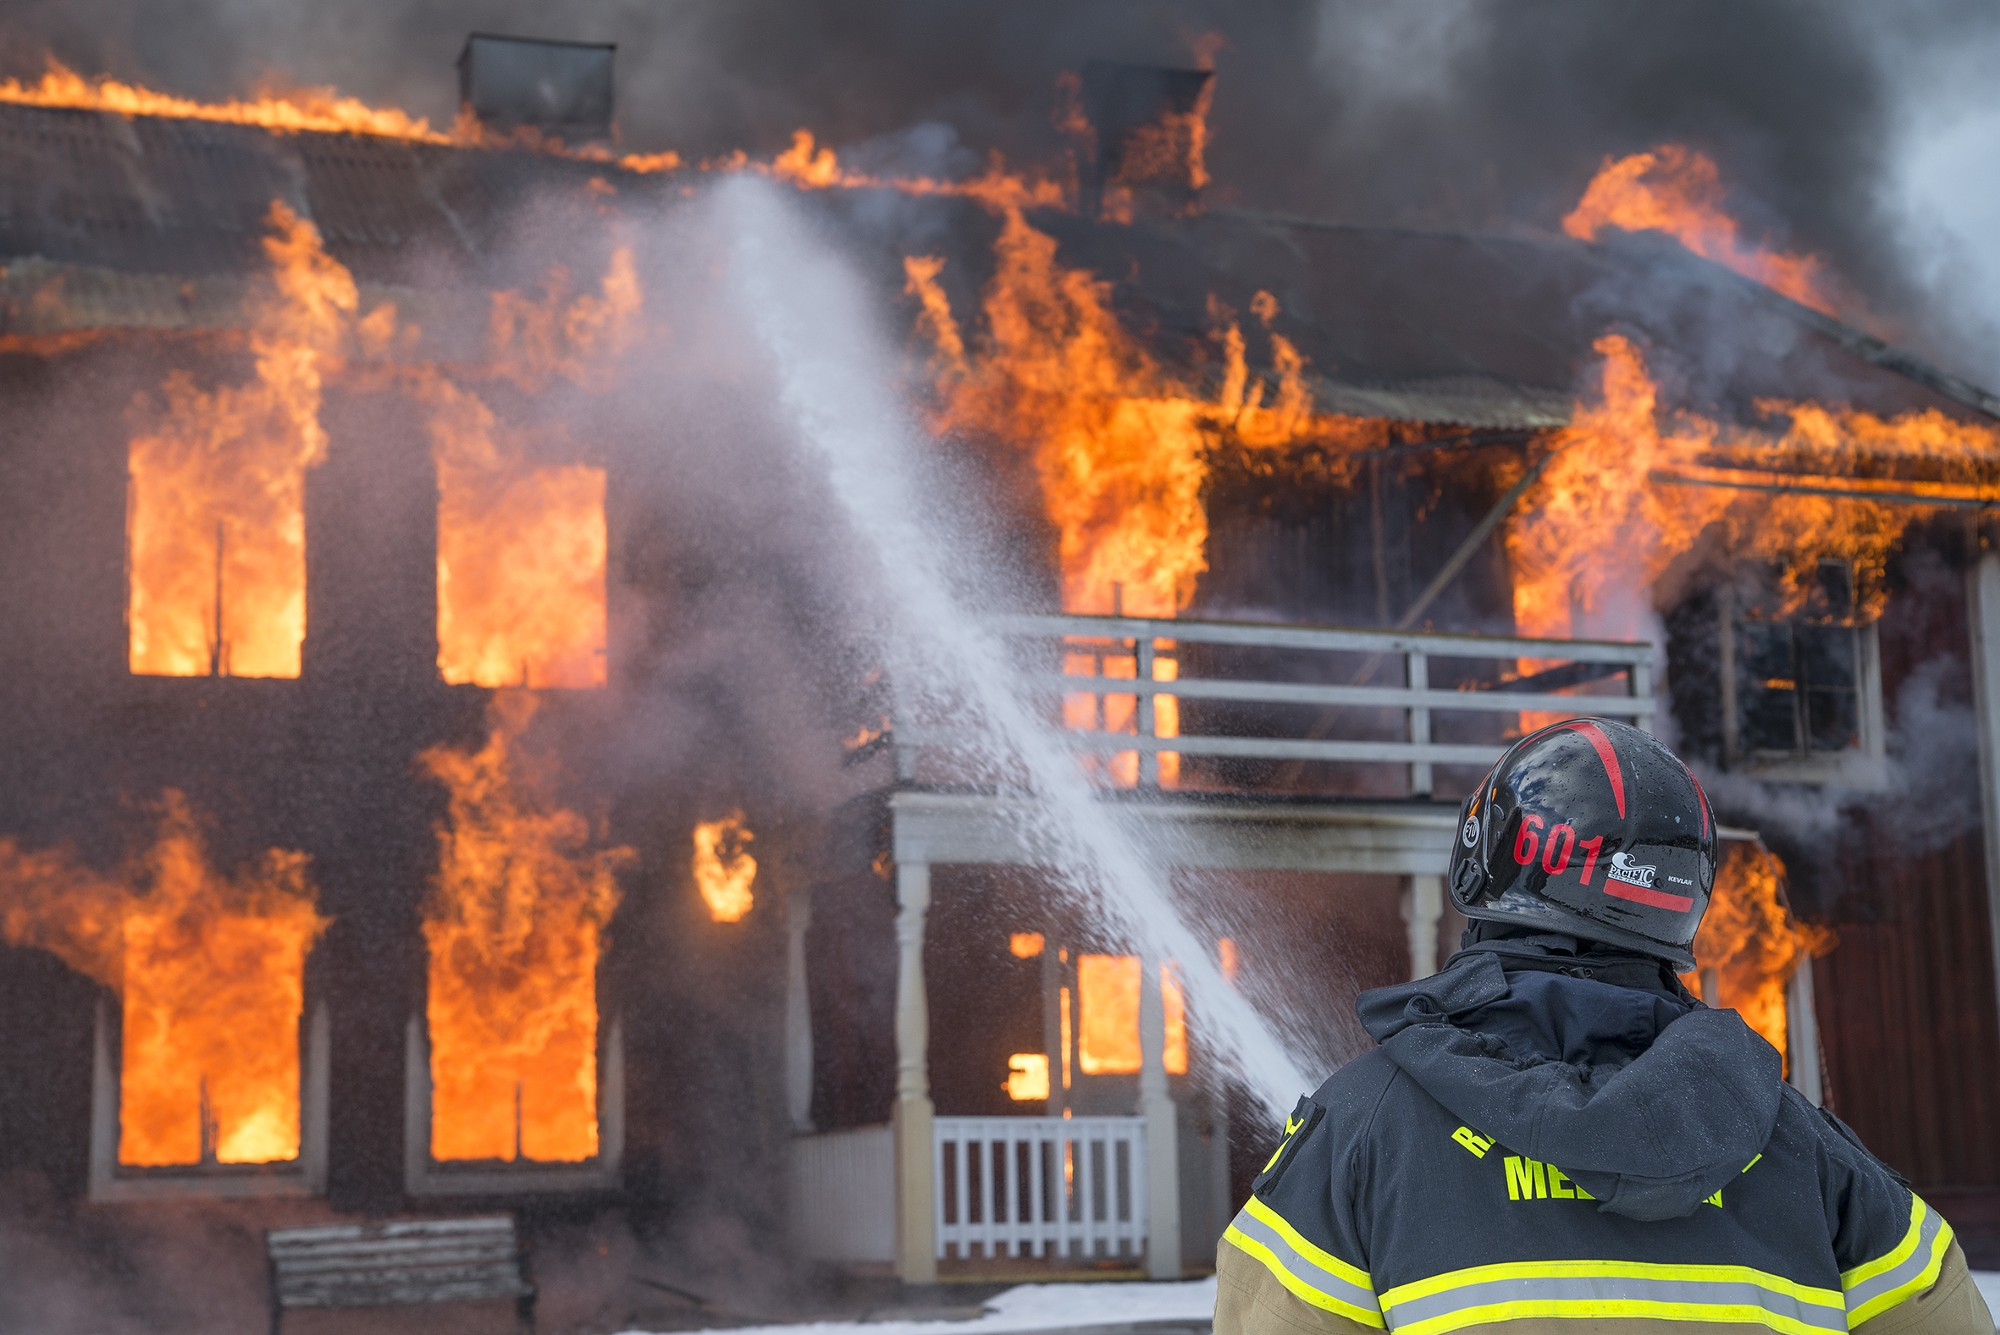 Fireman spraying water at a house on fire